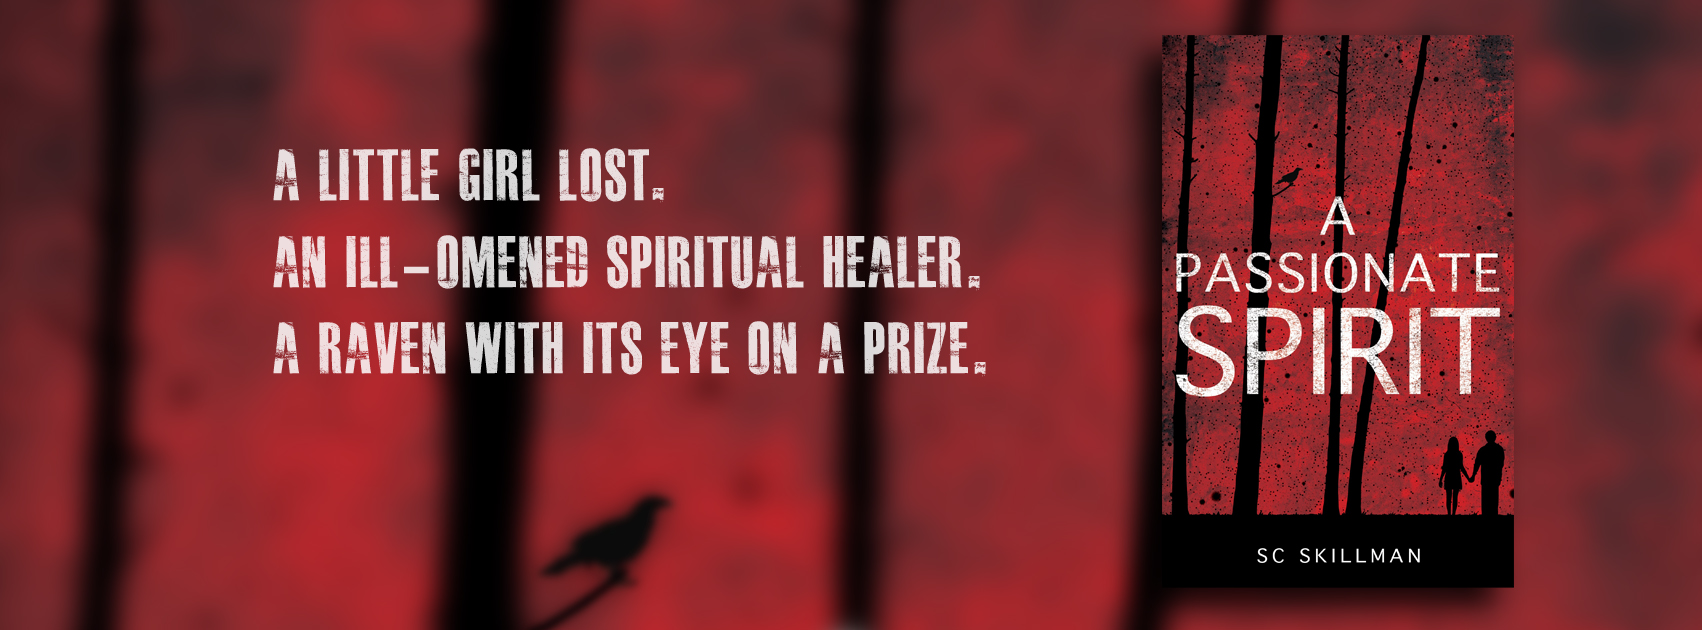 A Passionate Spirit cover image with tagline